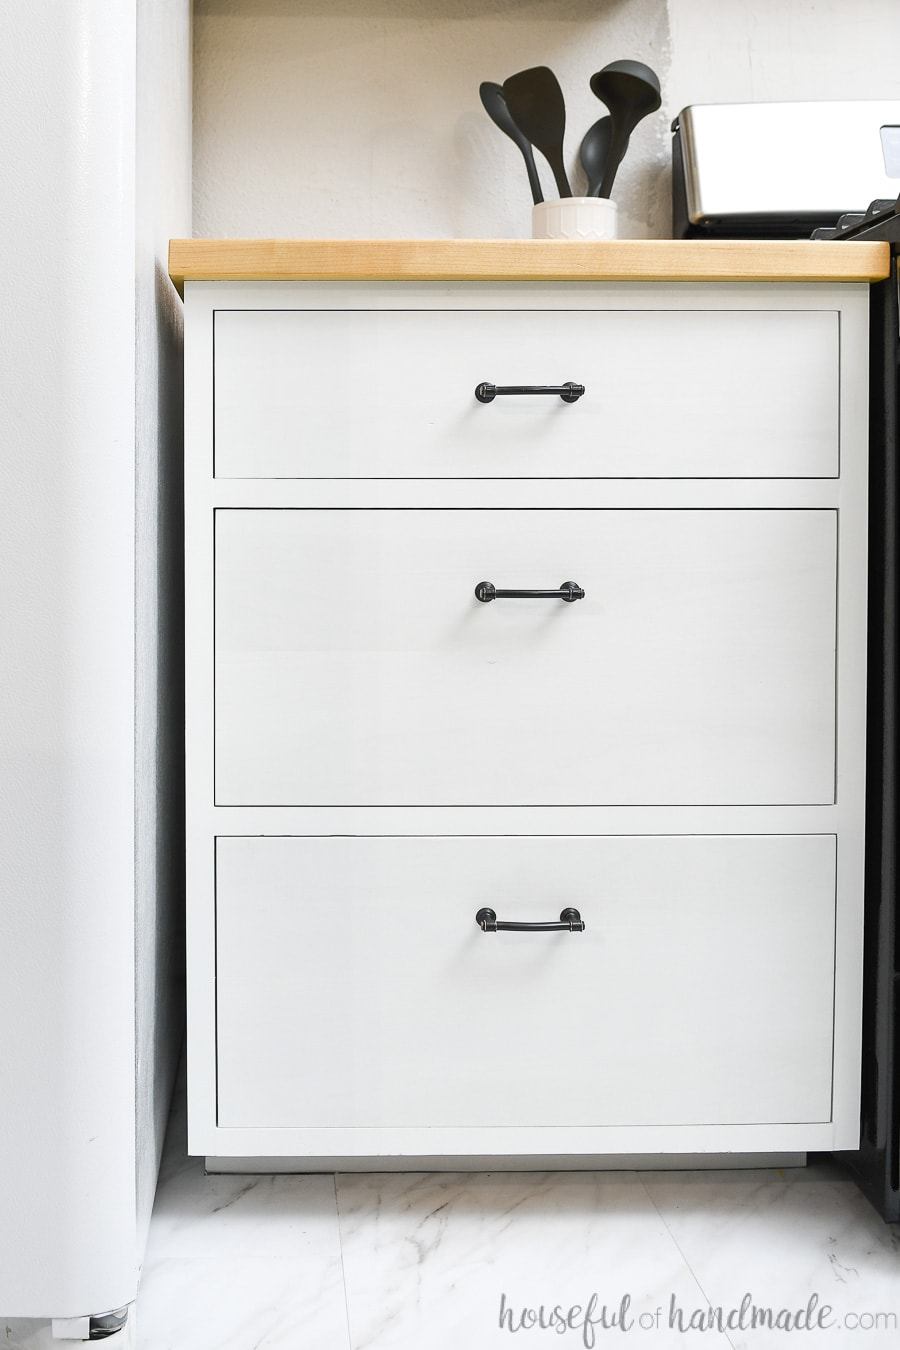 White 3 drawer base cabinet with rubbed bronze bar pulls and maple wood countertop on top.